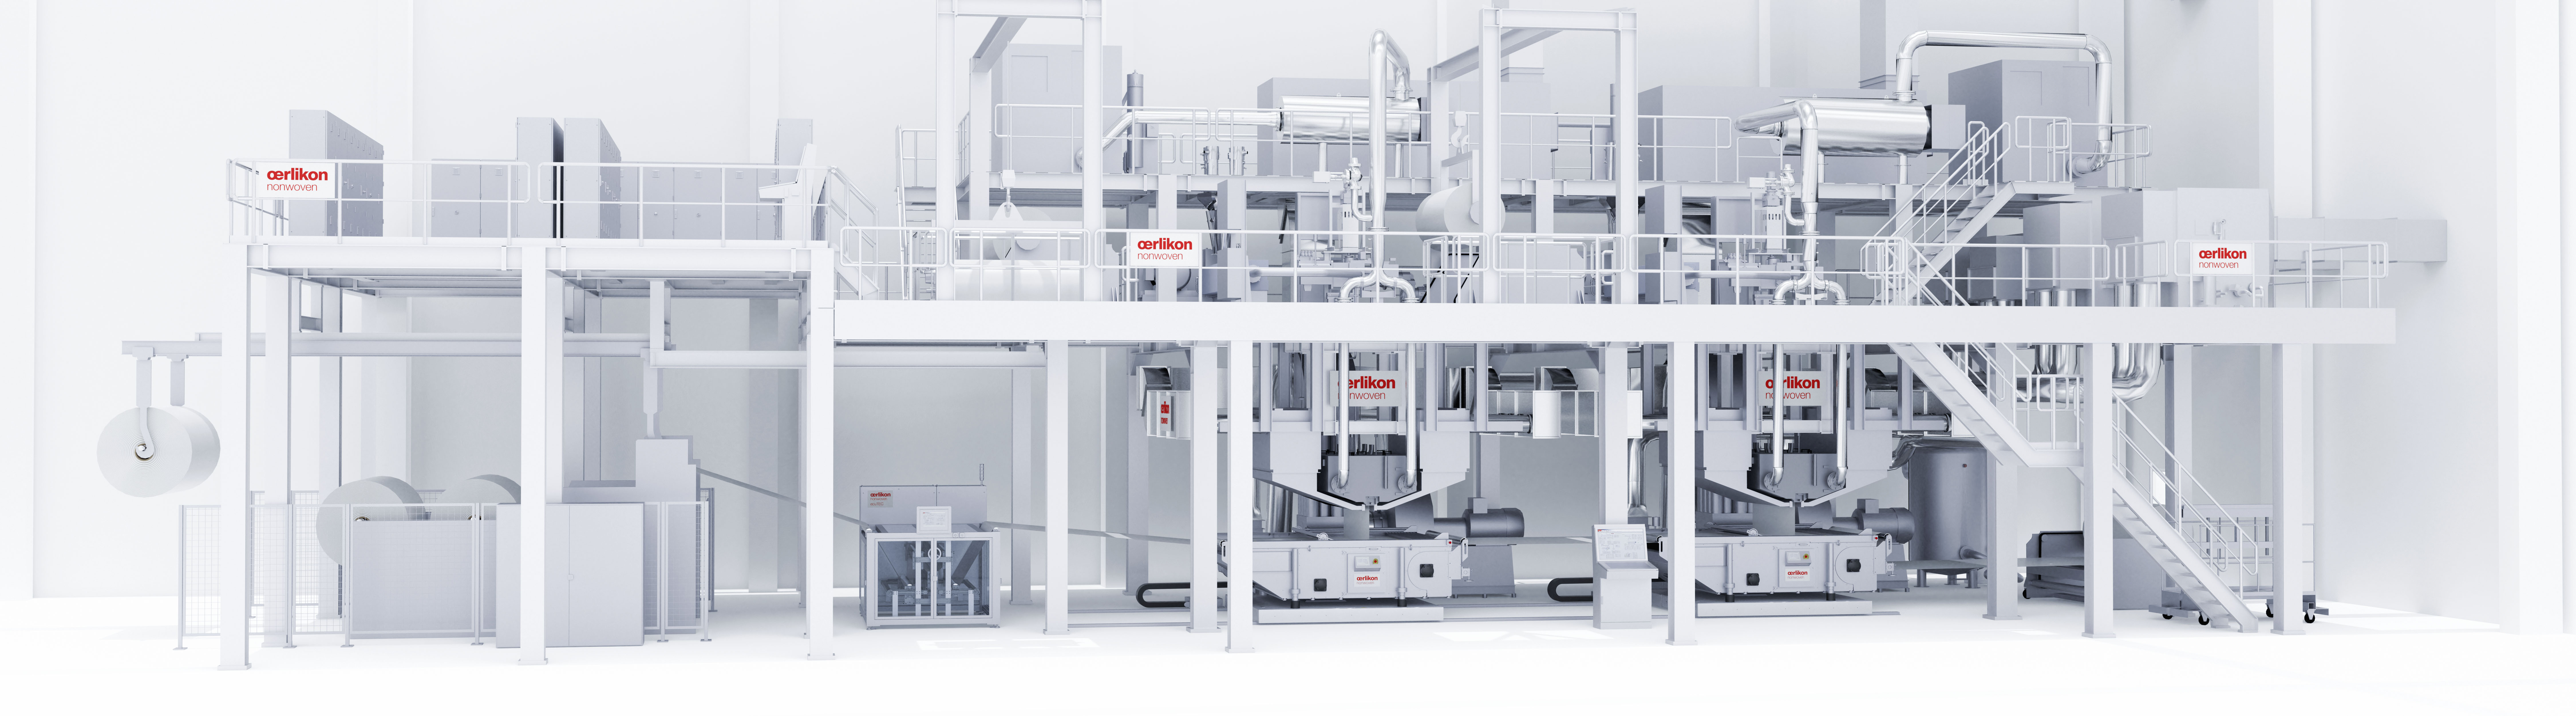 Oerlikon Nonwoven double-beam meltblown system – here with integrated ecuTEC+ for electrostatically-charging the filter media. © Oerlikon.